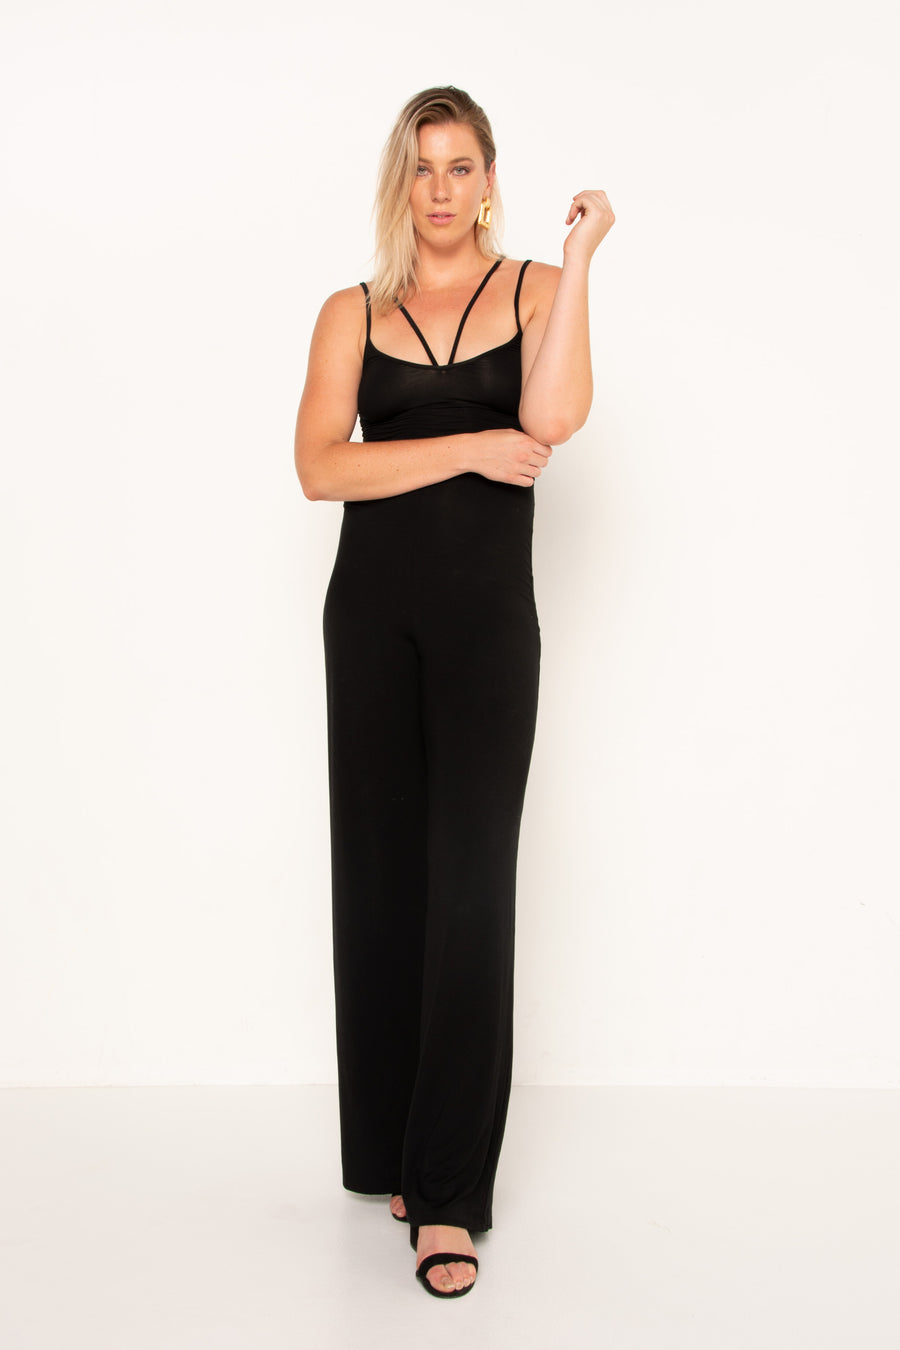 Strappy Black Jumpsuit